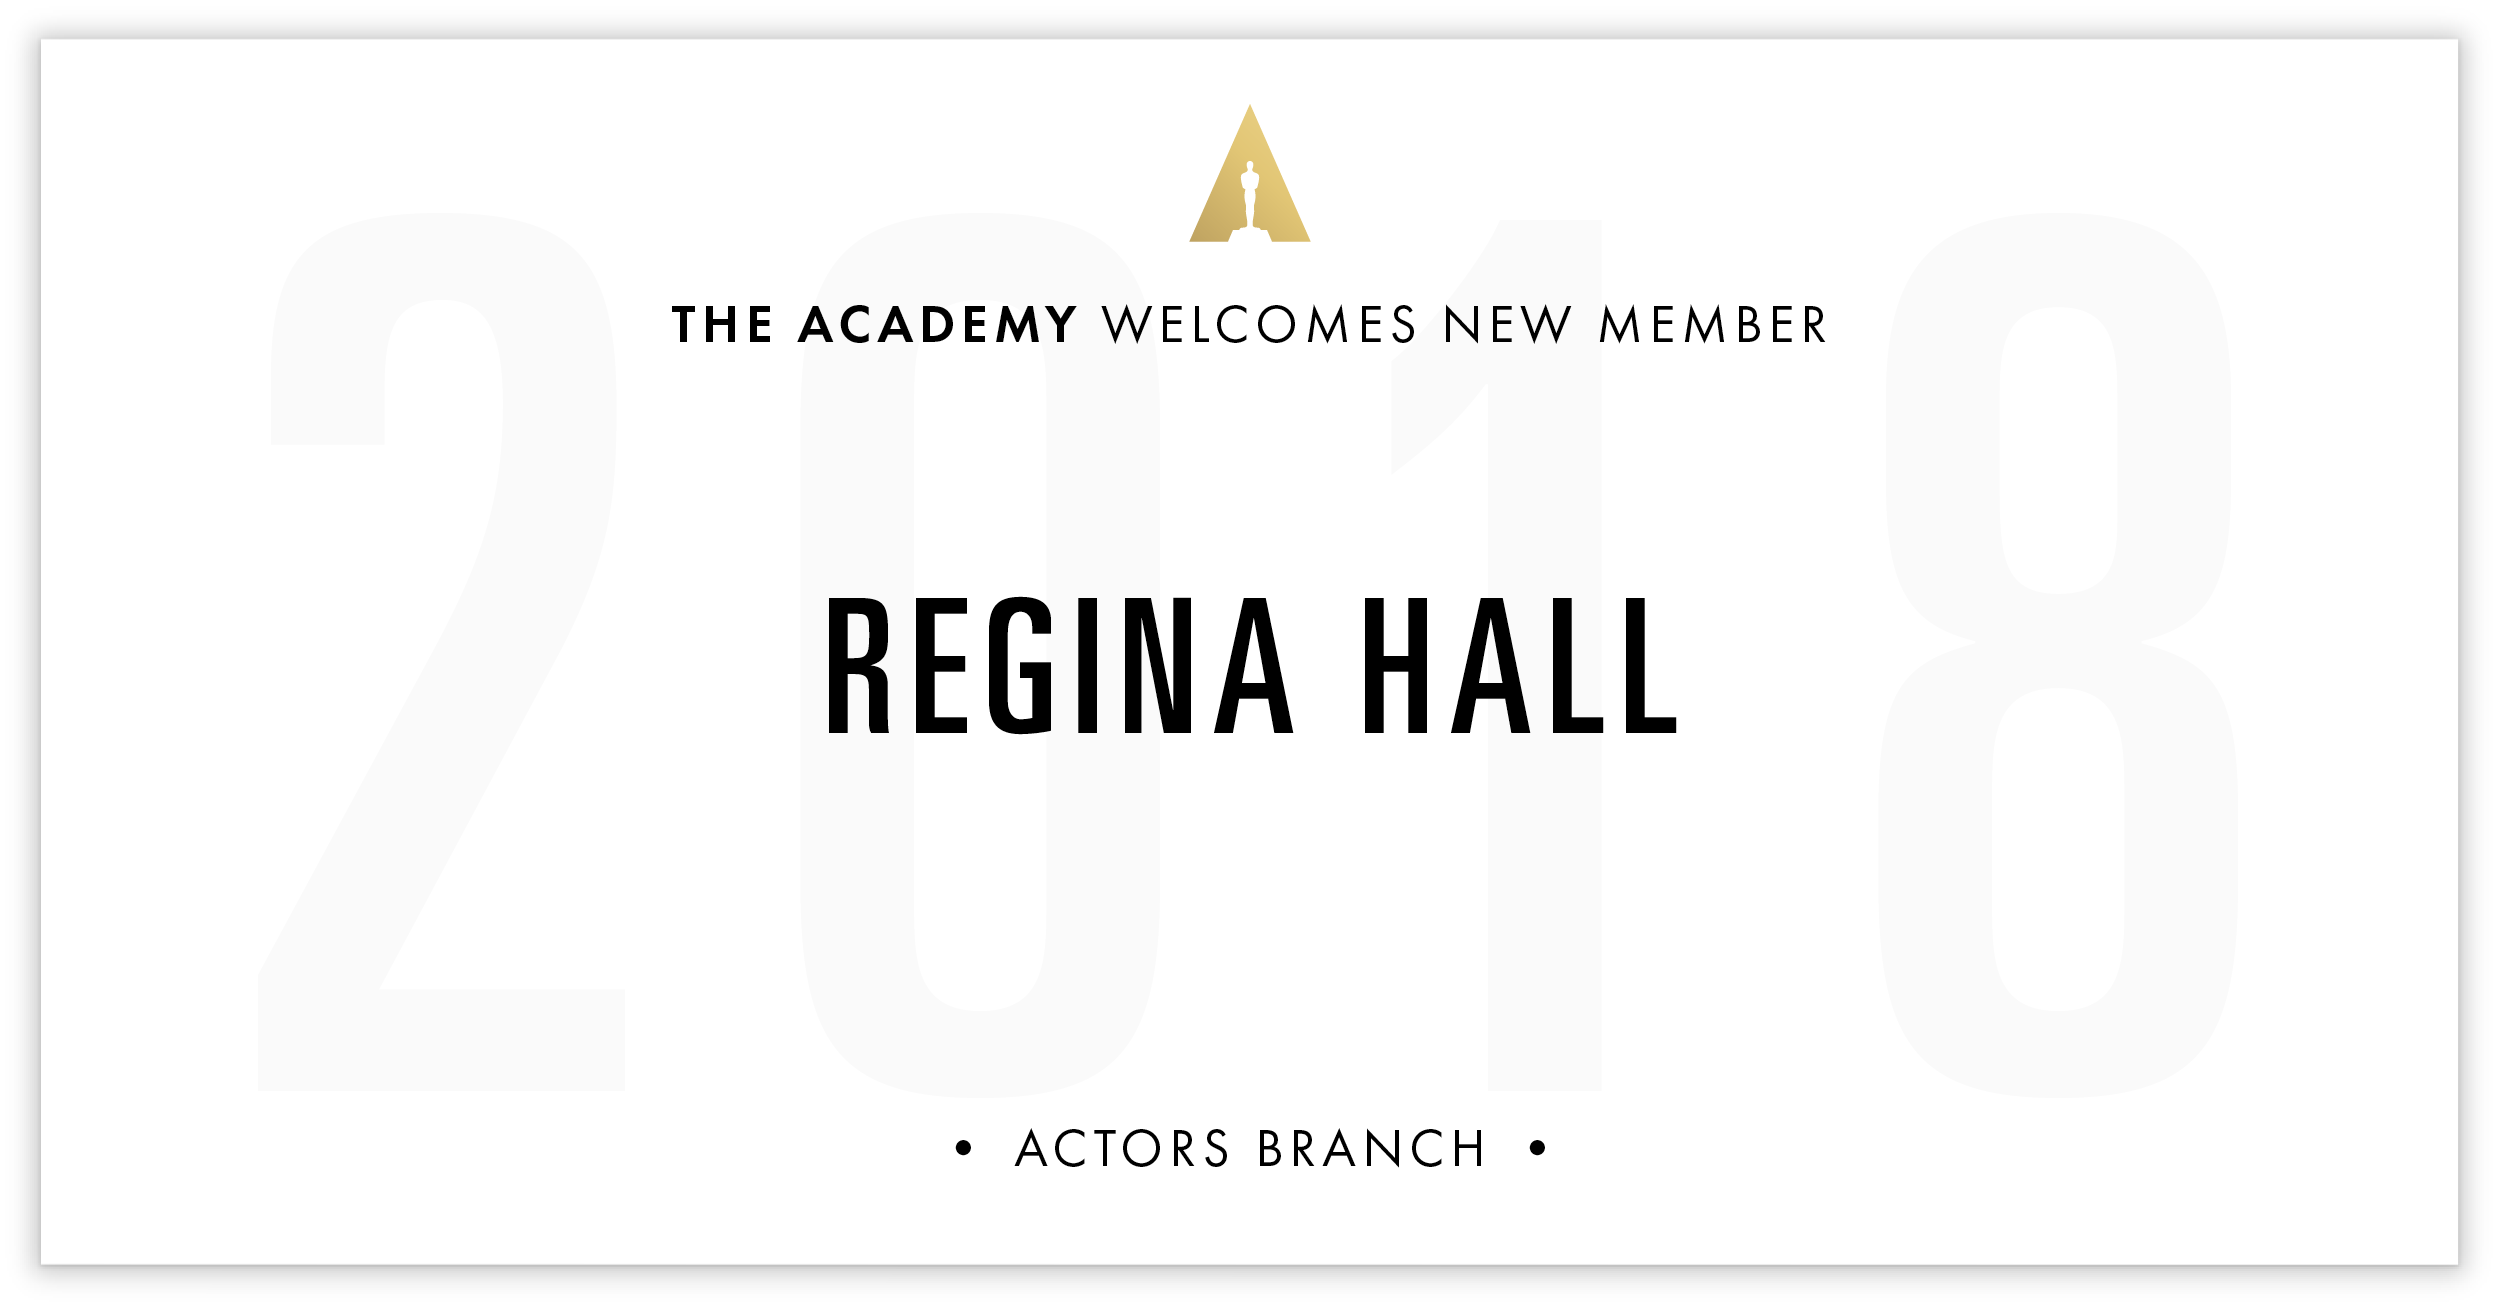 Regina Hall is invited!